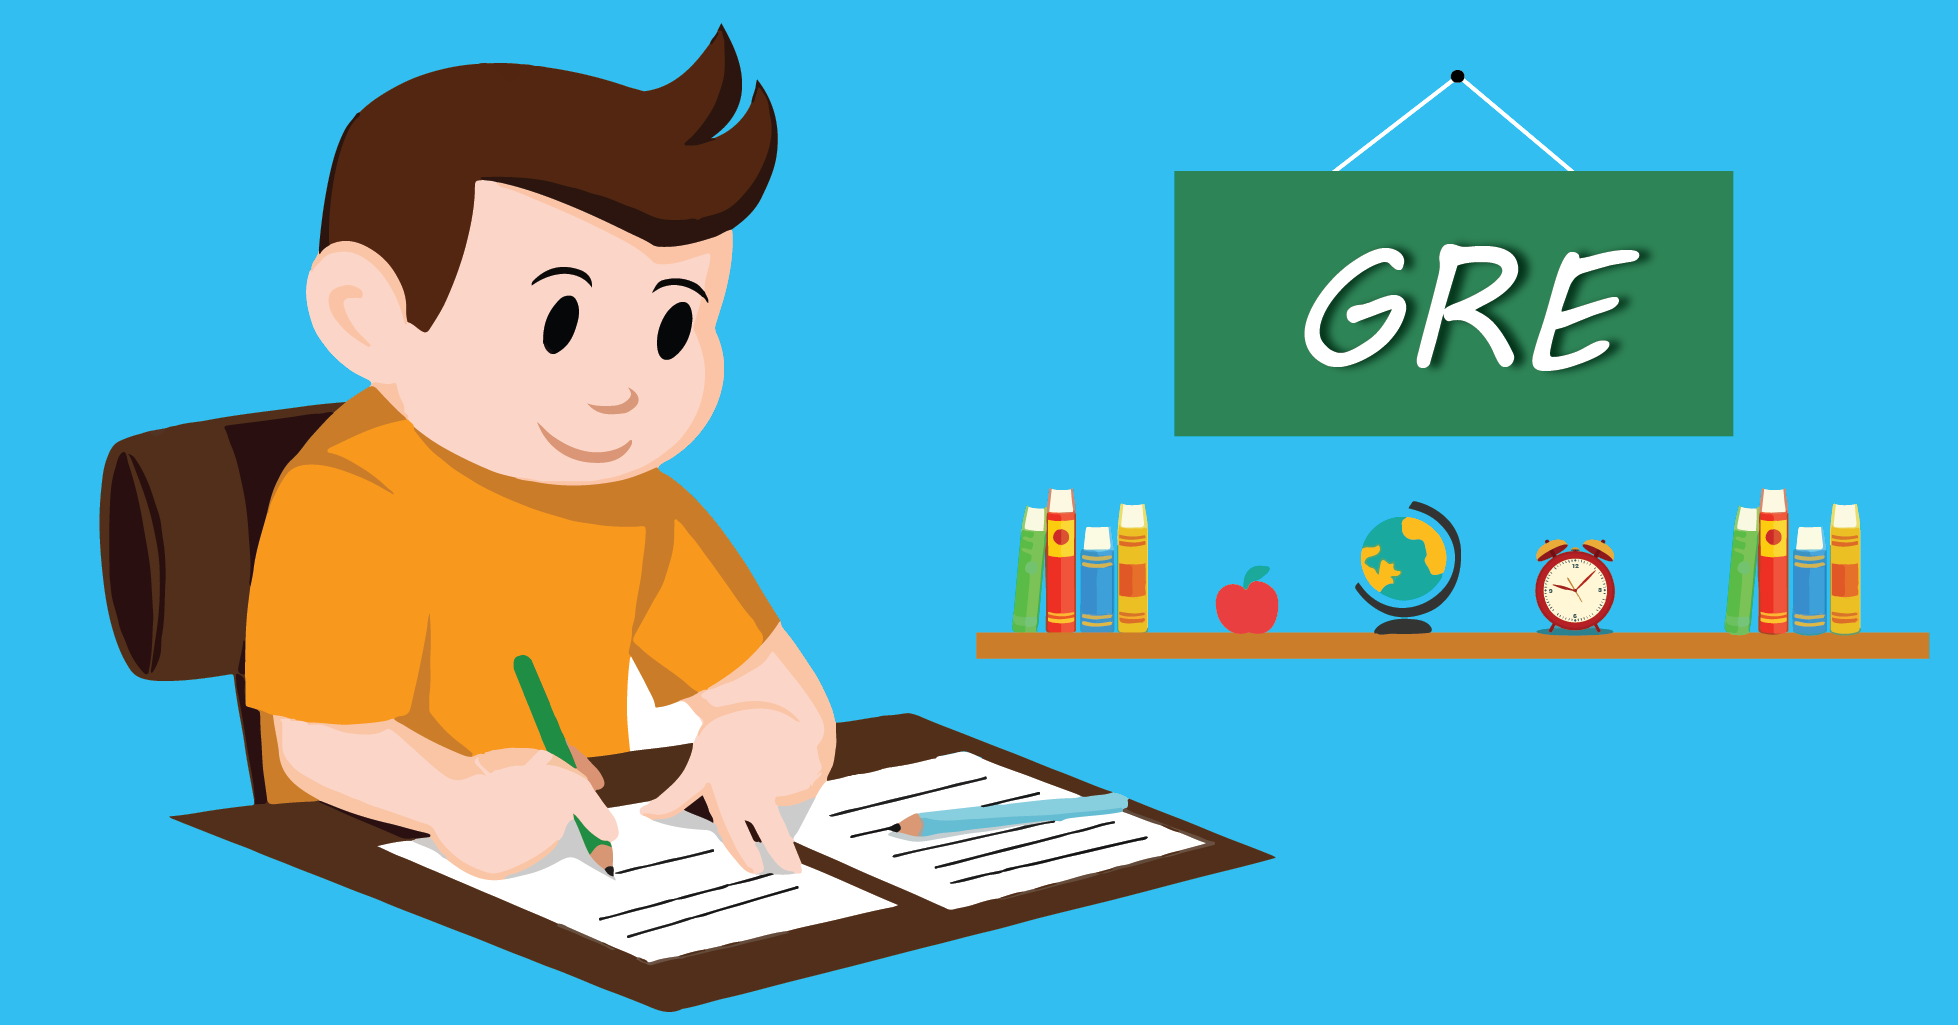 Test clipart test preparation. Taking the gre for